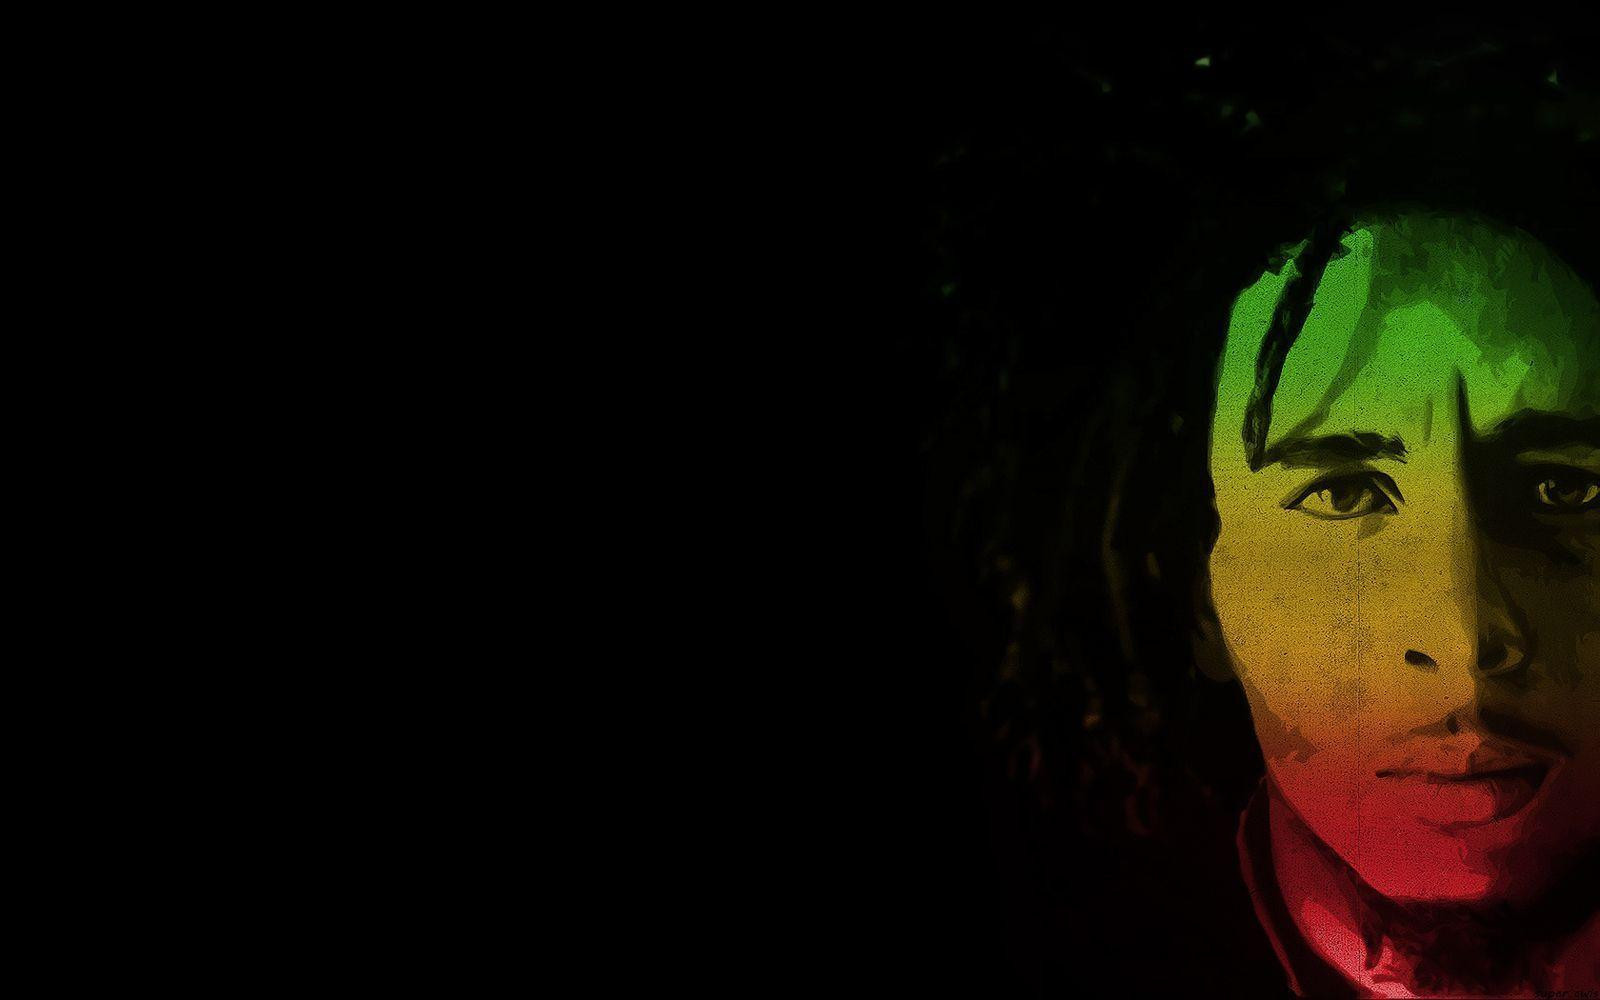 Rasta wallpapers hd wallpaper cave - Rasta bob live wallpaper free download ...